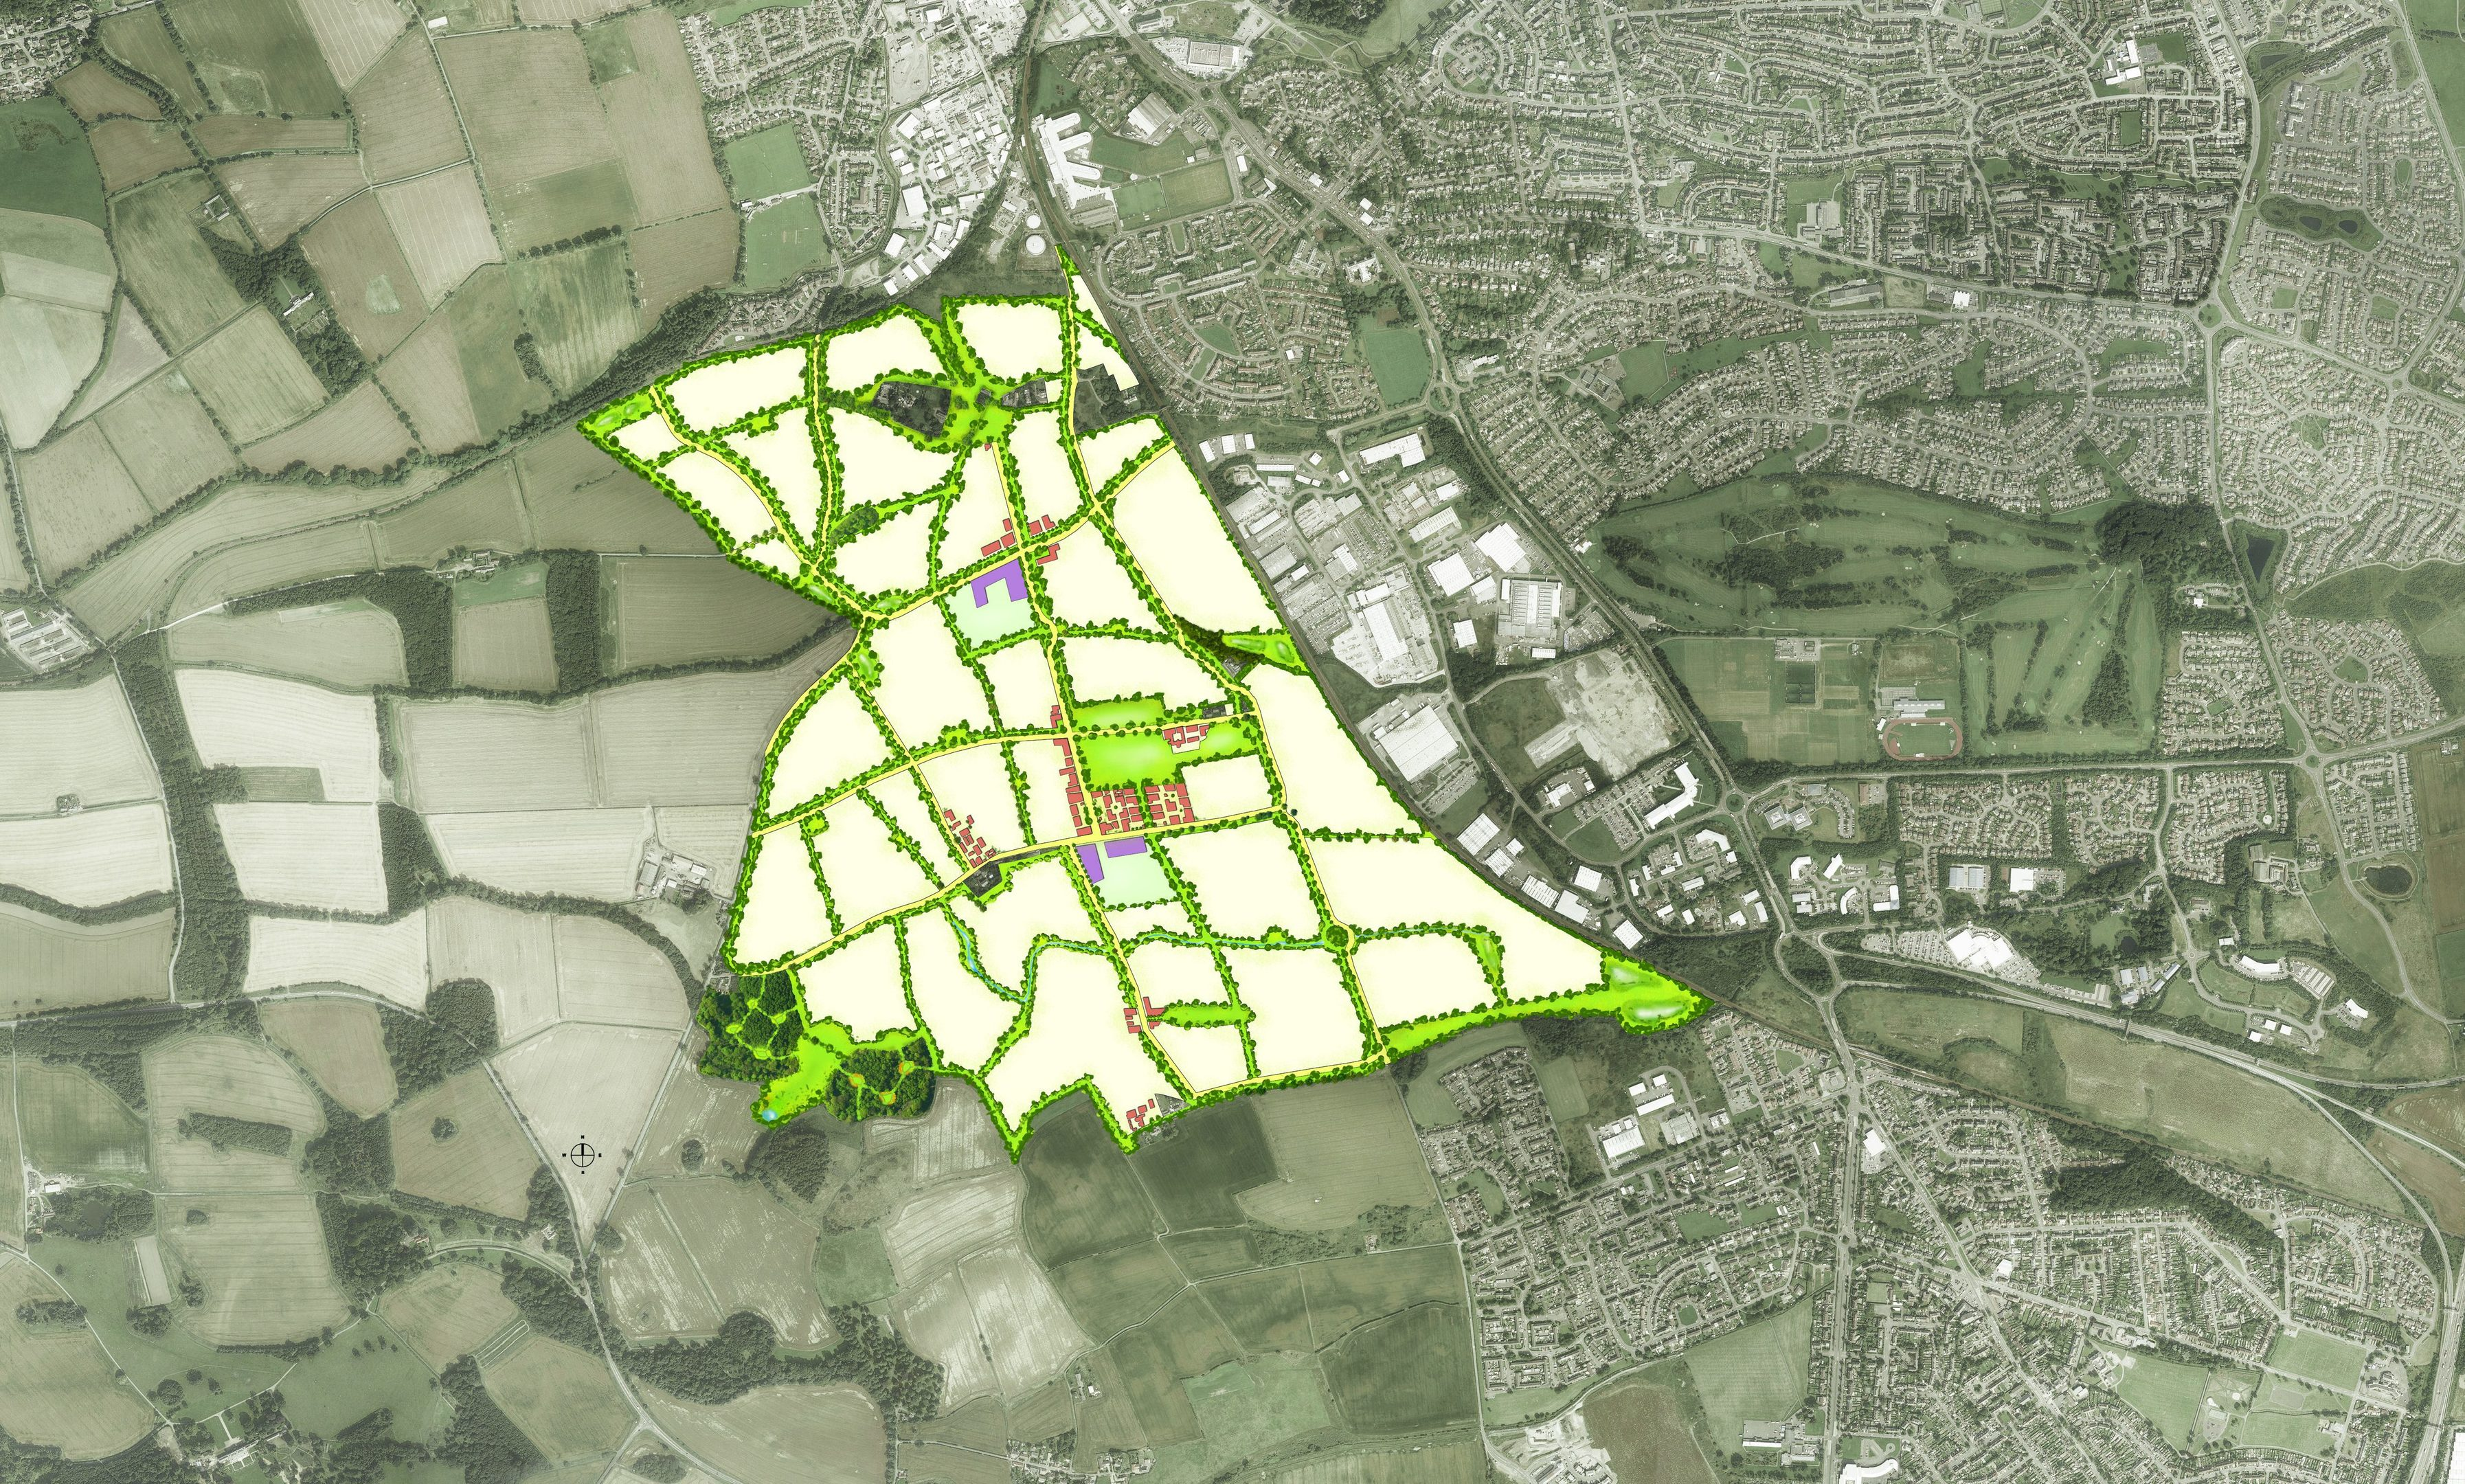 The area planned for the development.